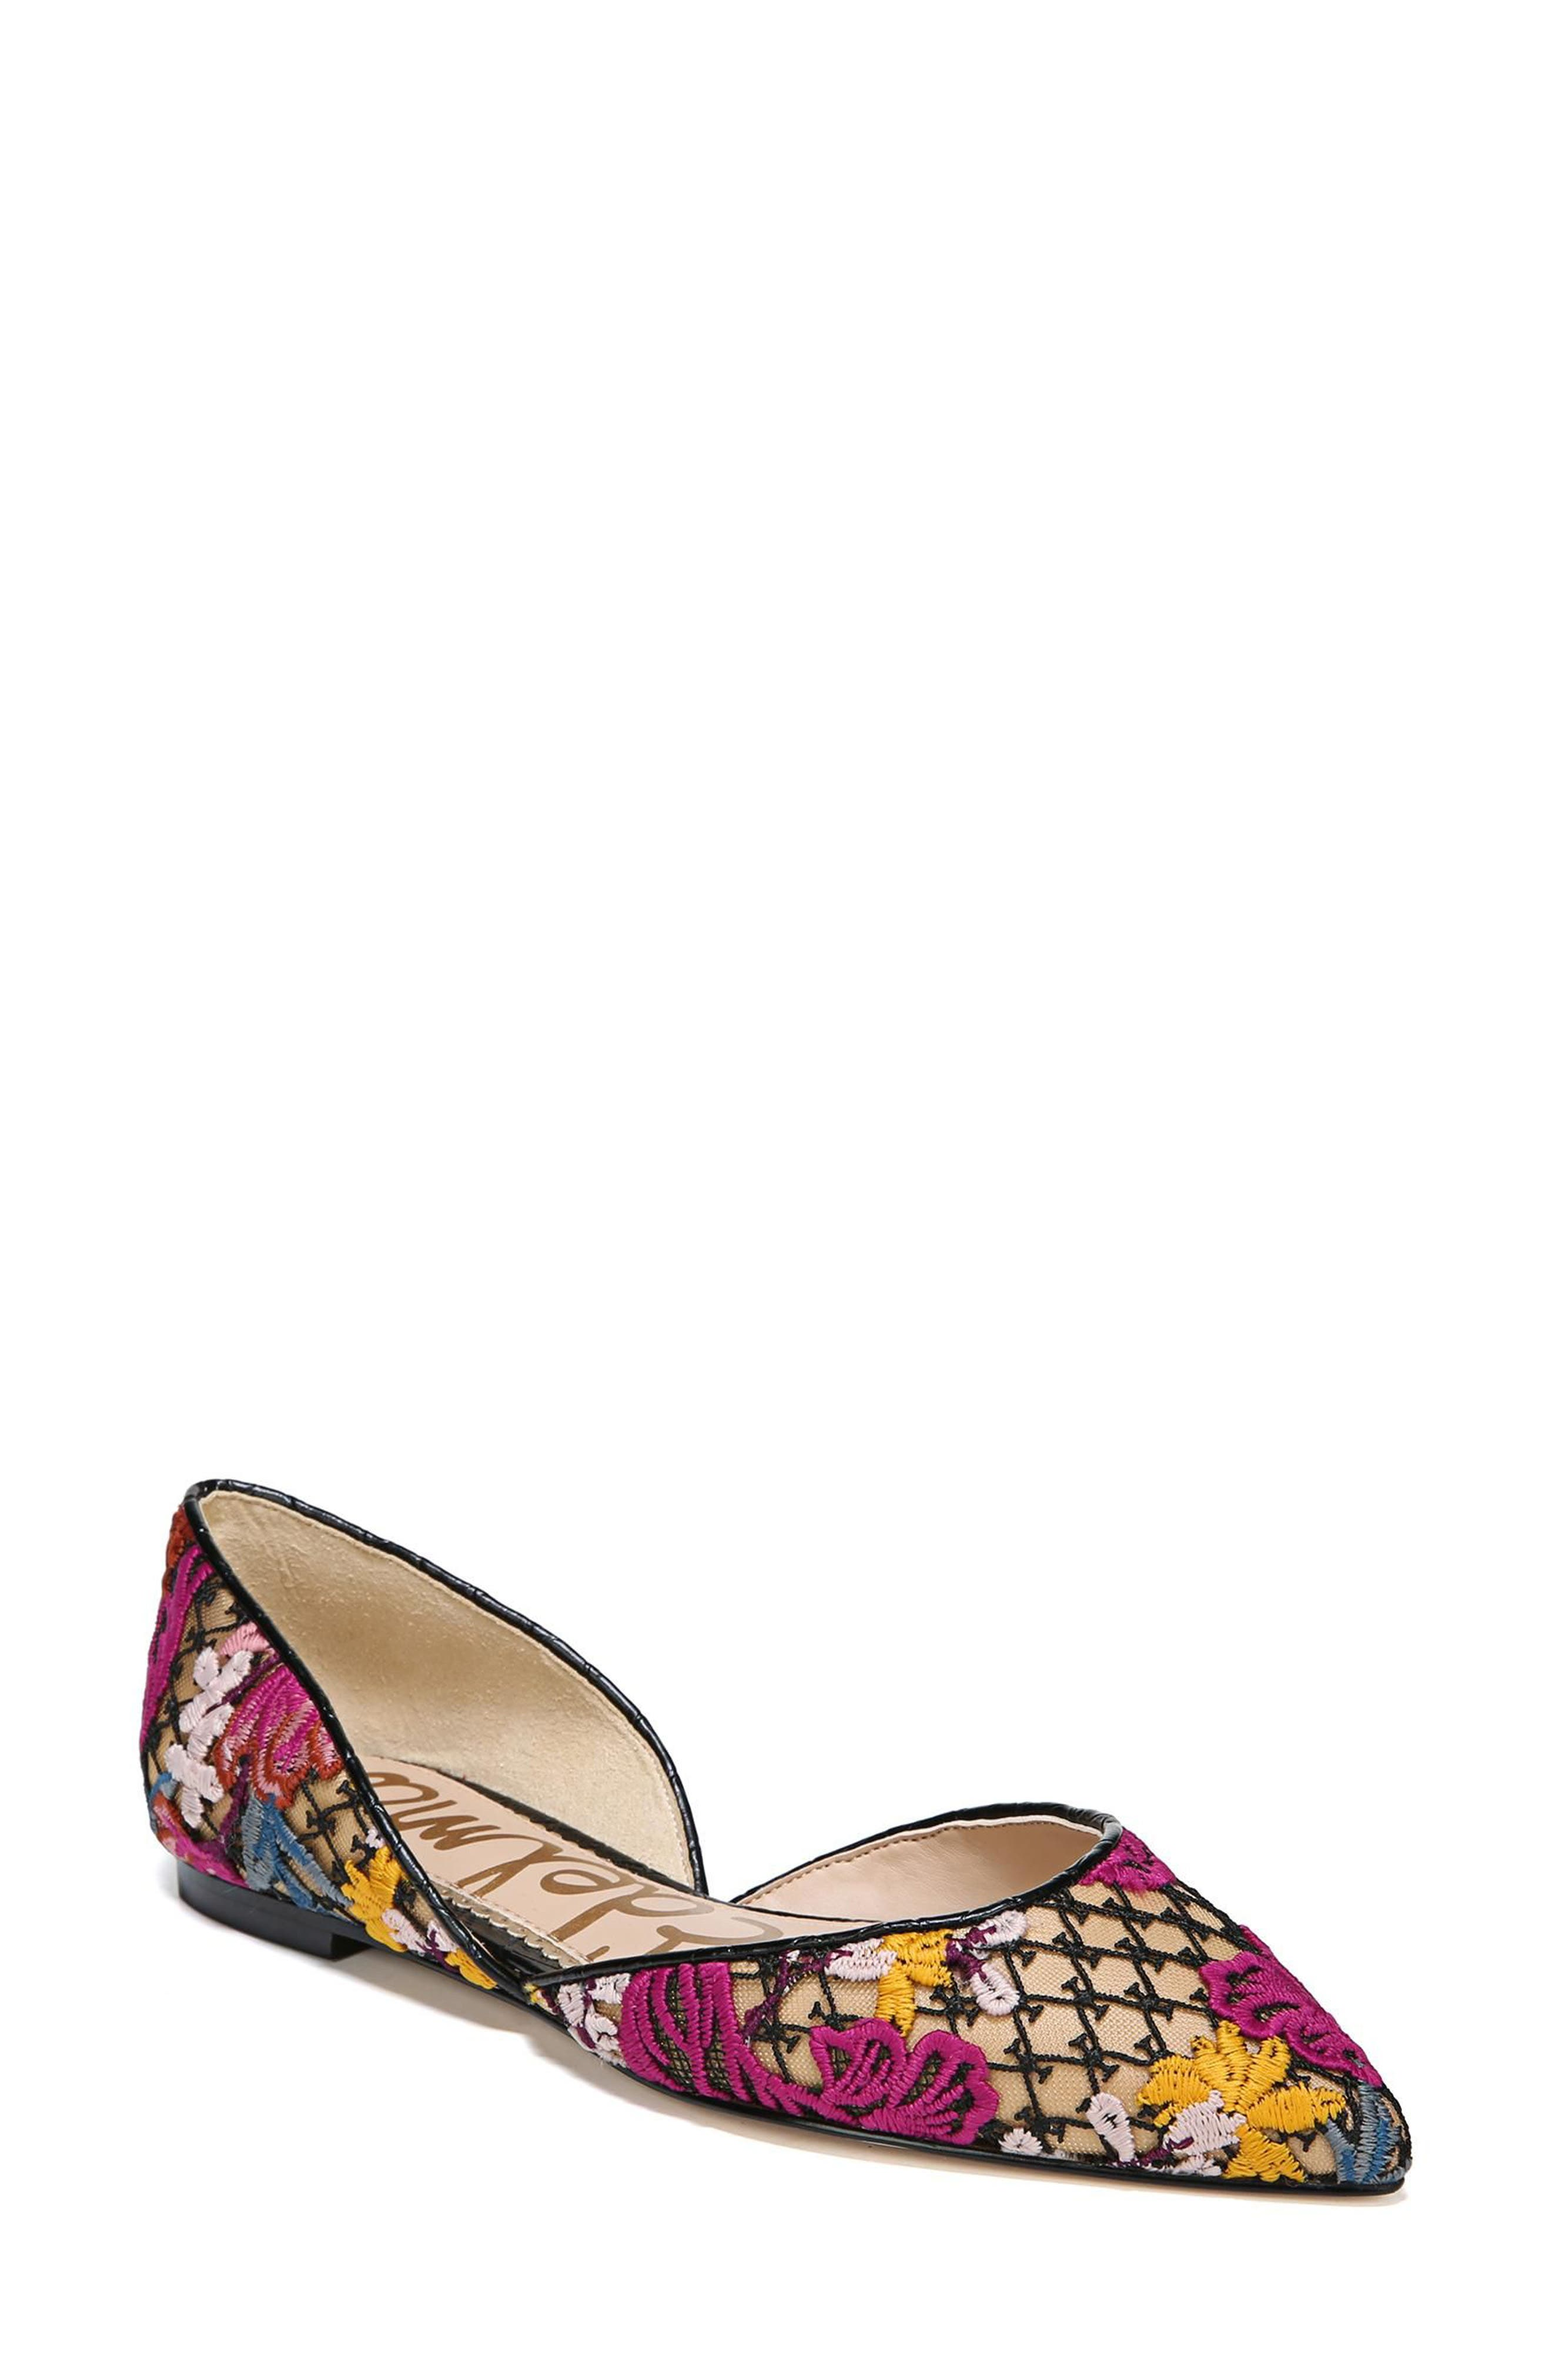 Rodney Pointy Toe d'Orsay Flat,                         Main,                         color, Bright Multi Floral Lace